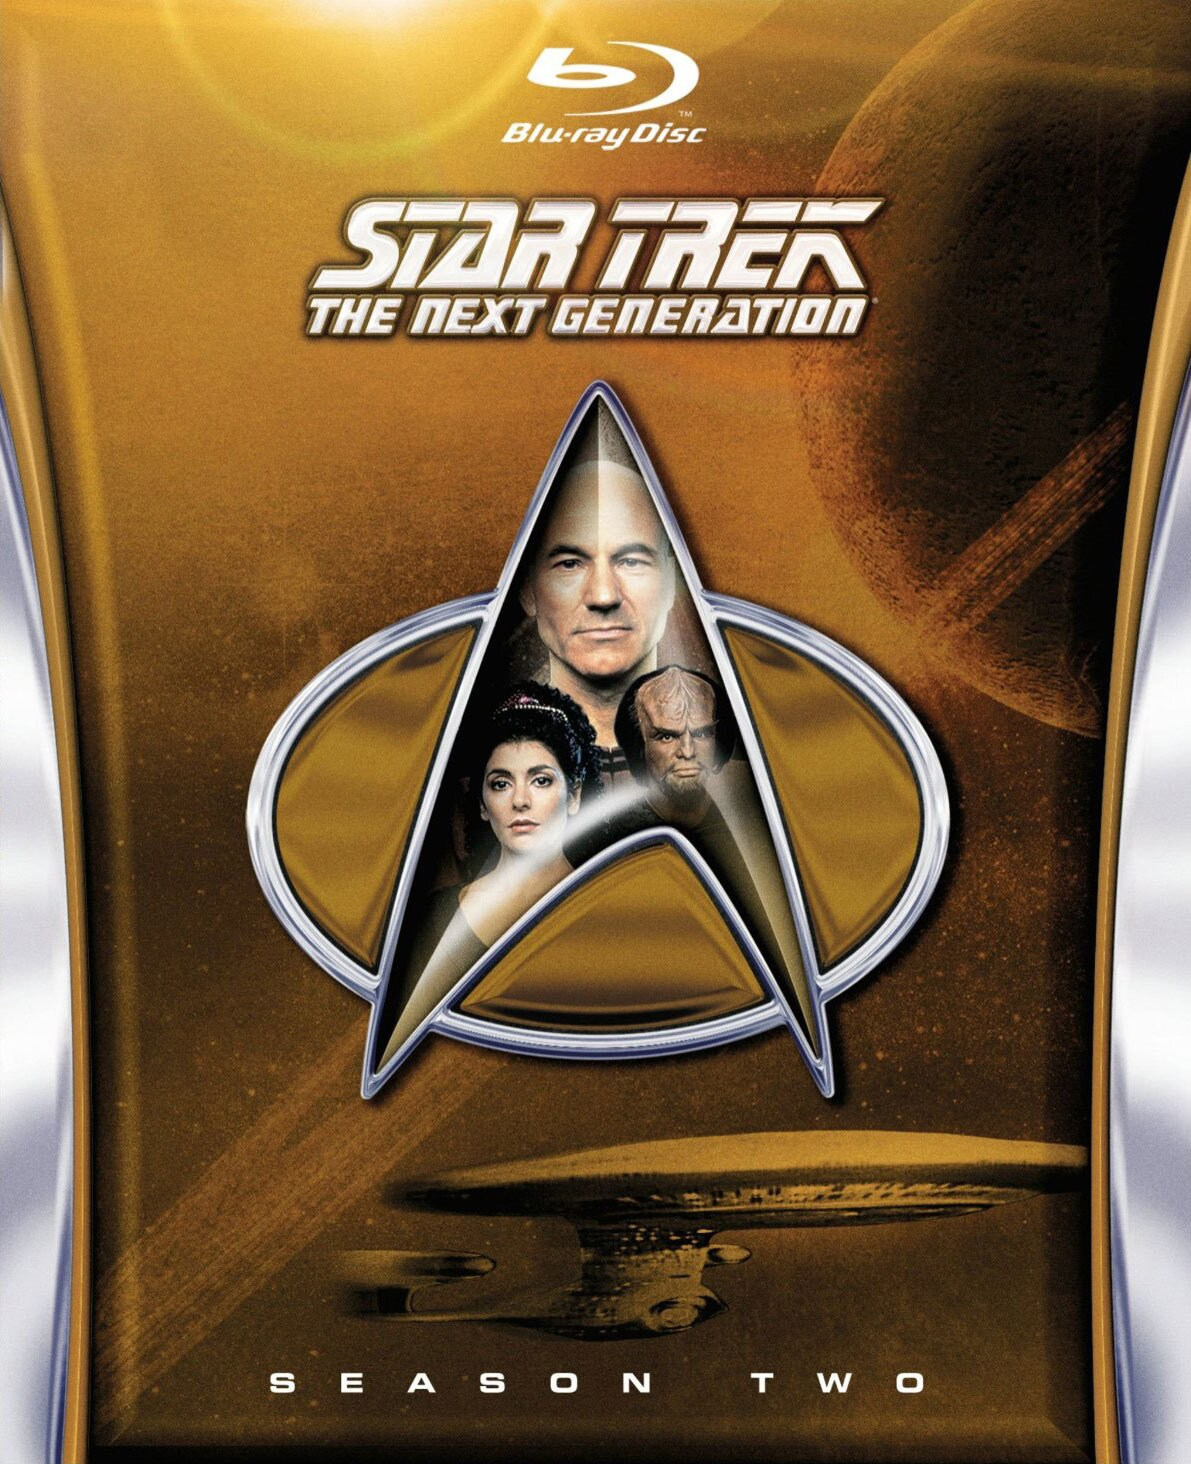 Star Trek: The Next Generation Season 2 (Blu-ray Disc)